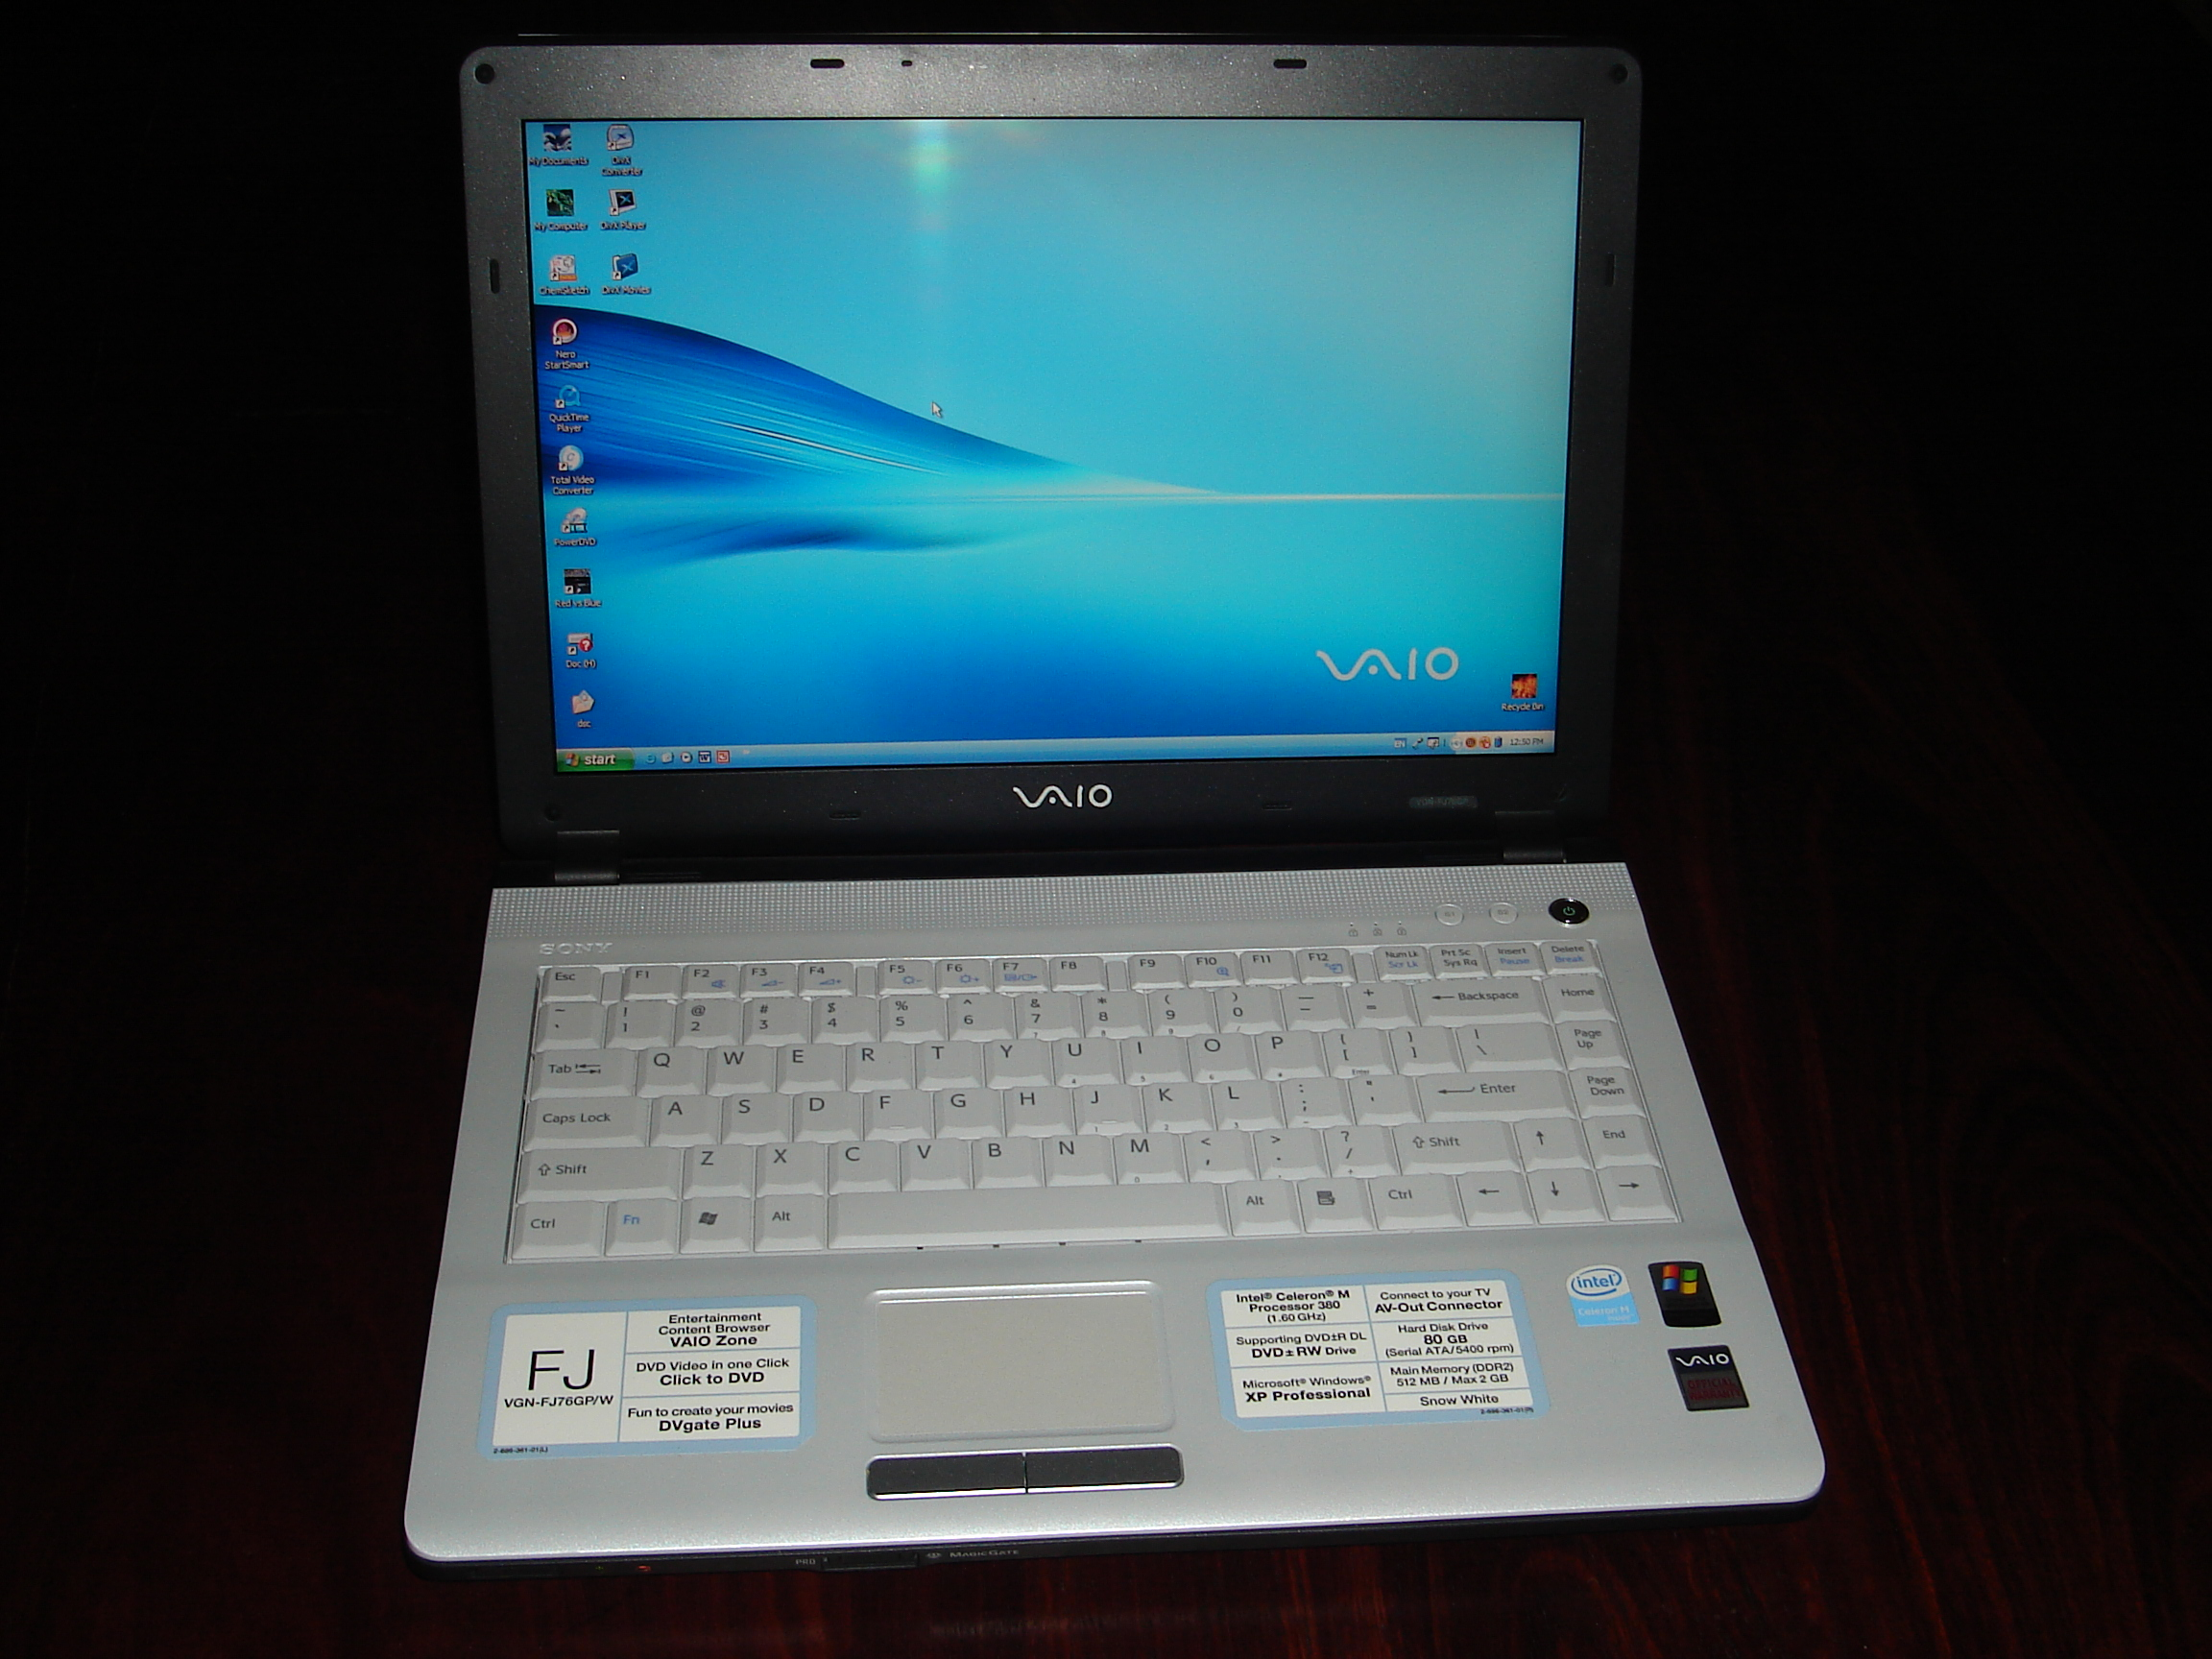 SONY VAIO VGN-FJ290 WINDOWS 7 X64 DRIVER